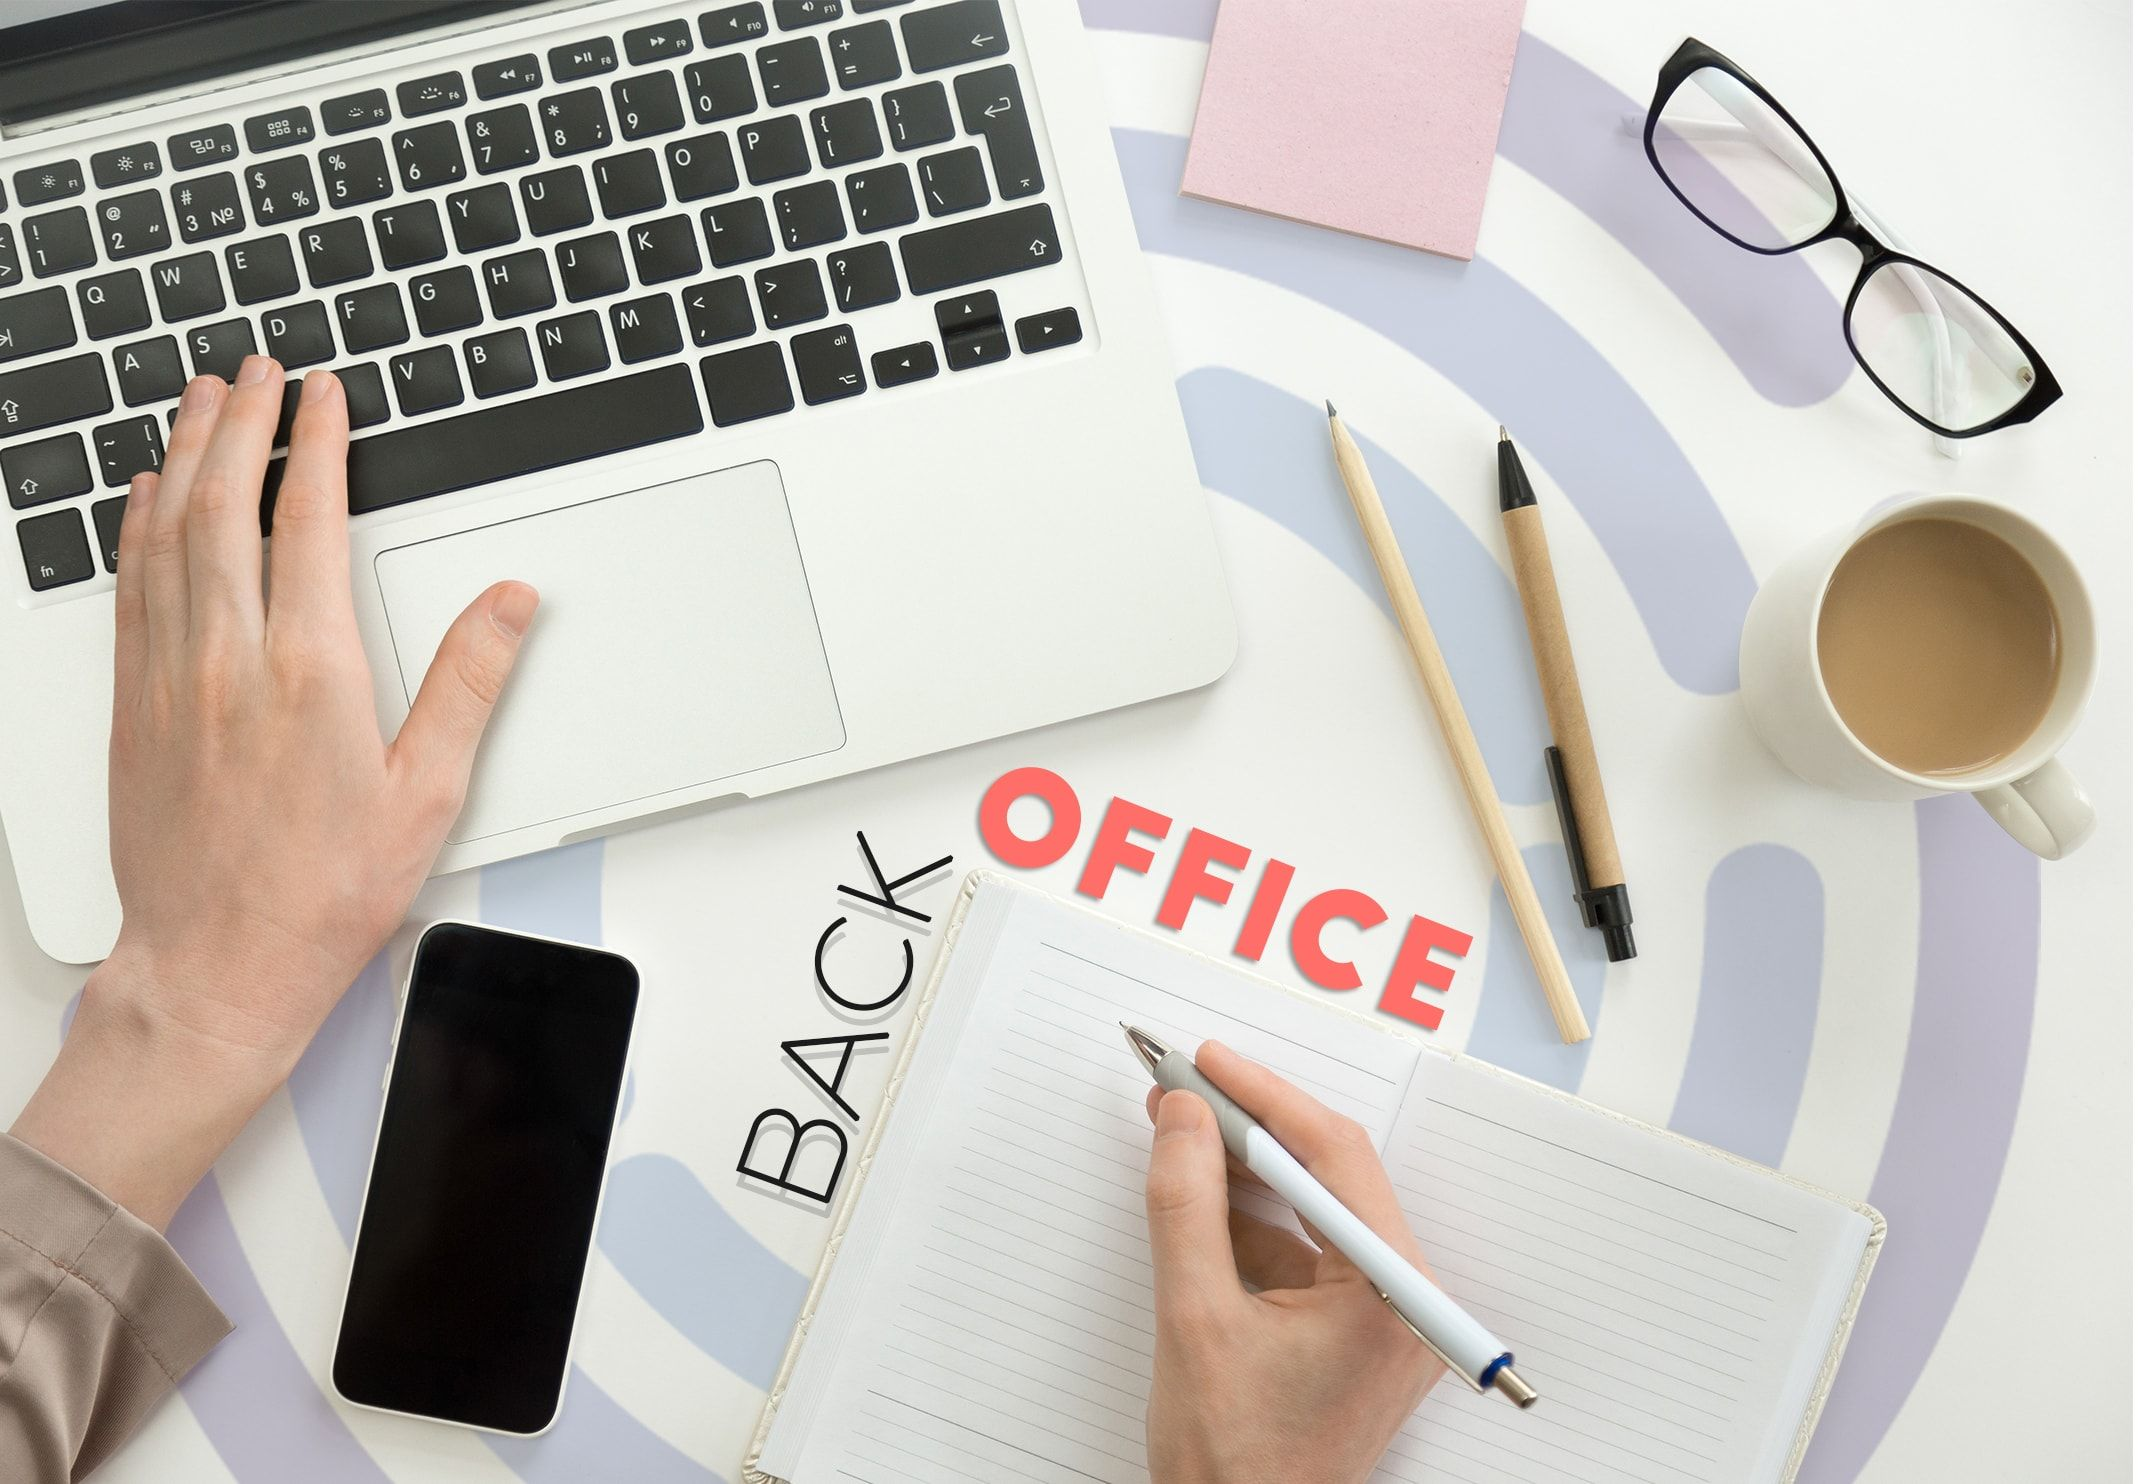 Back office staff blueprint business solutions corp business and back office staff blueprint business solutions corp malvernweather Images